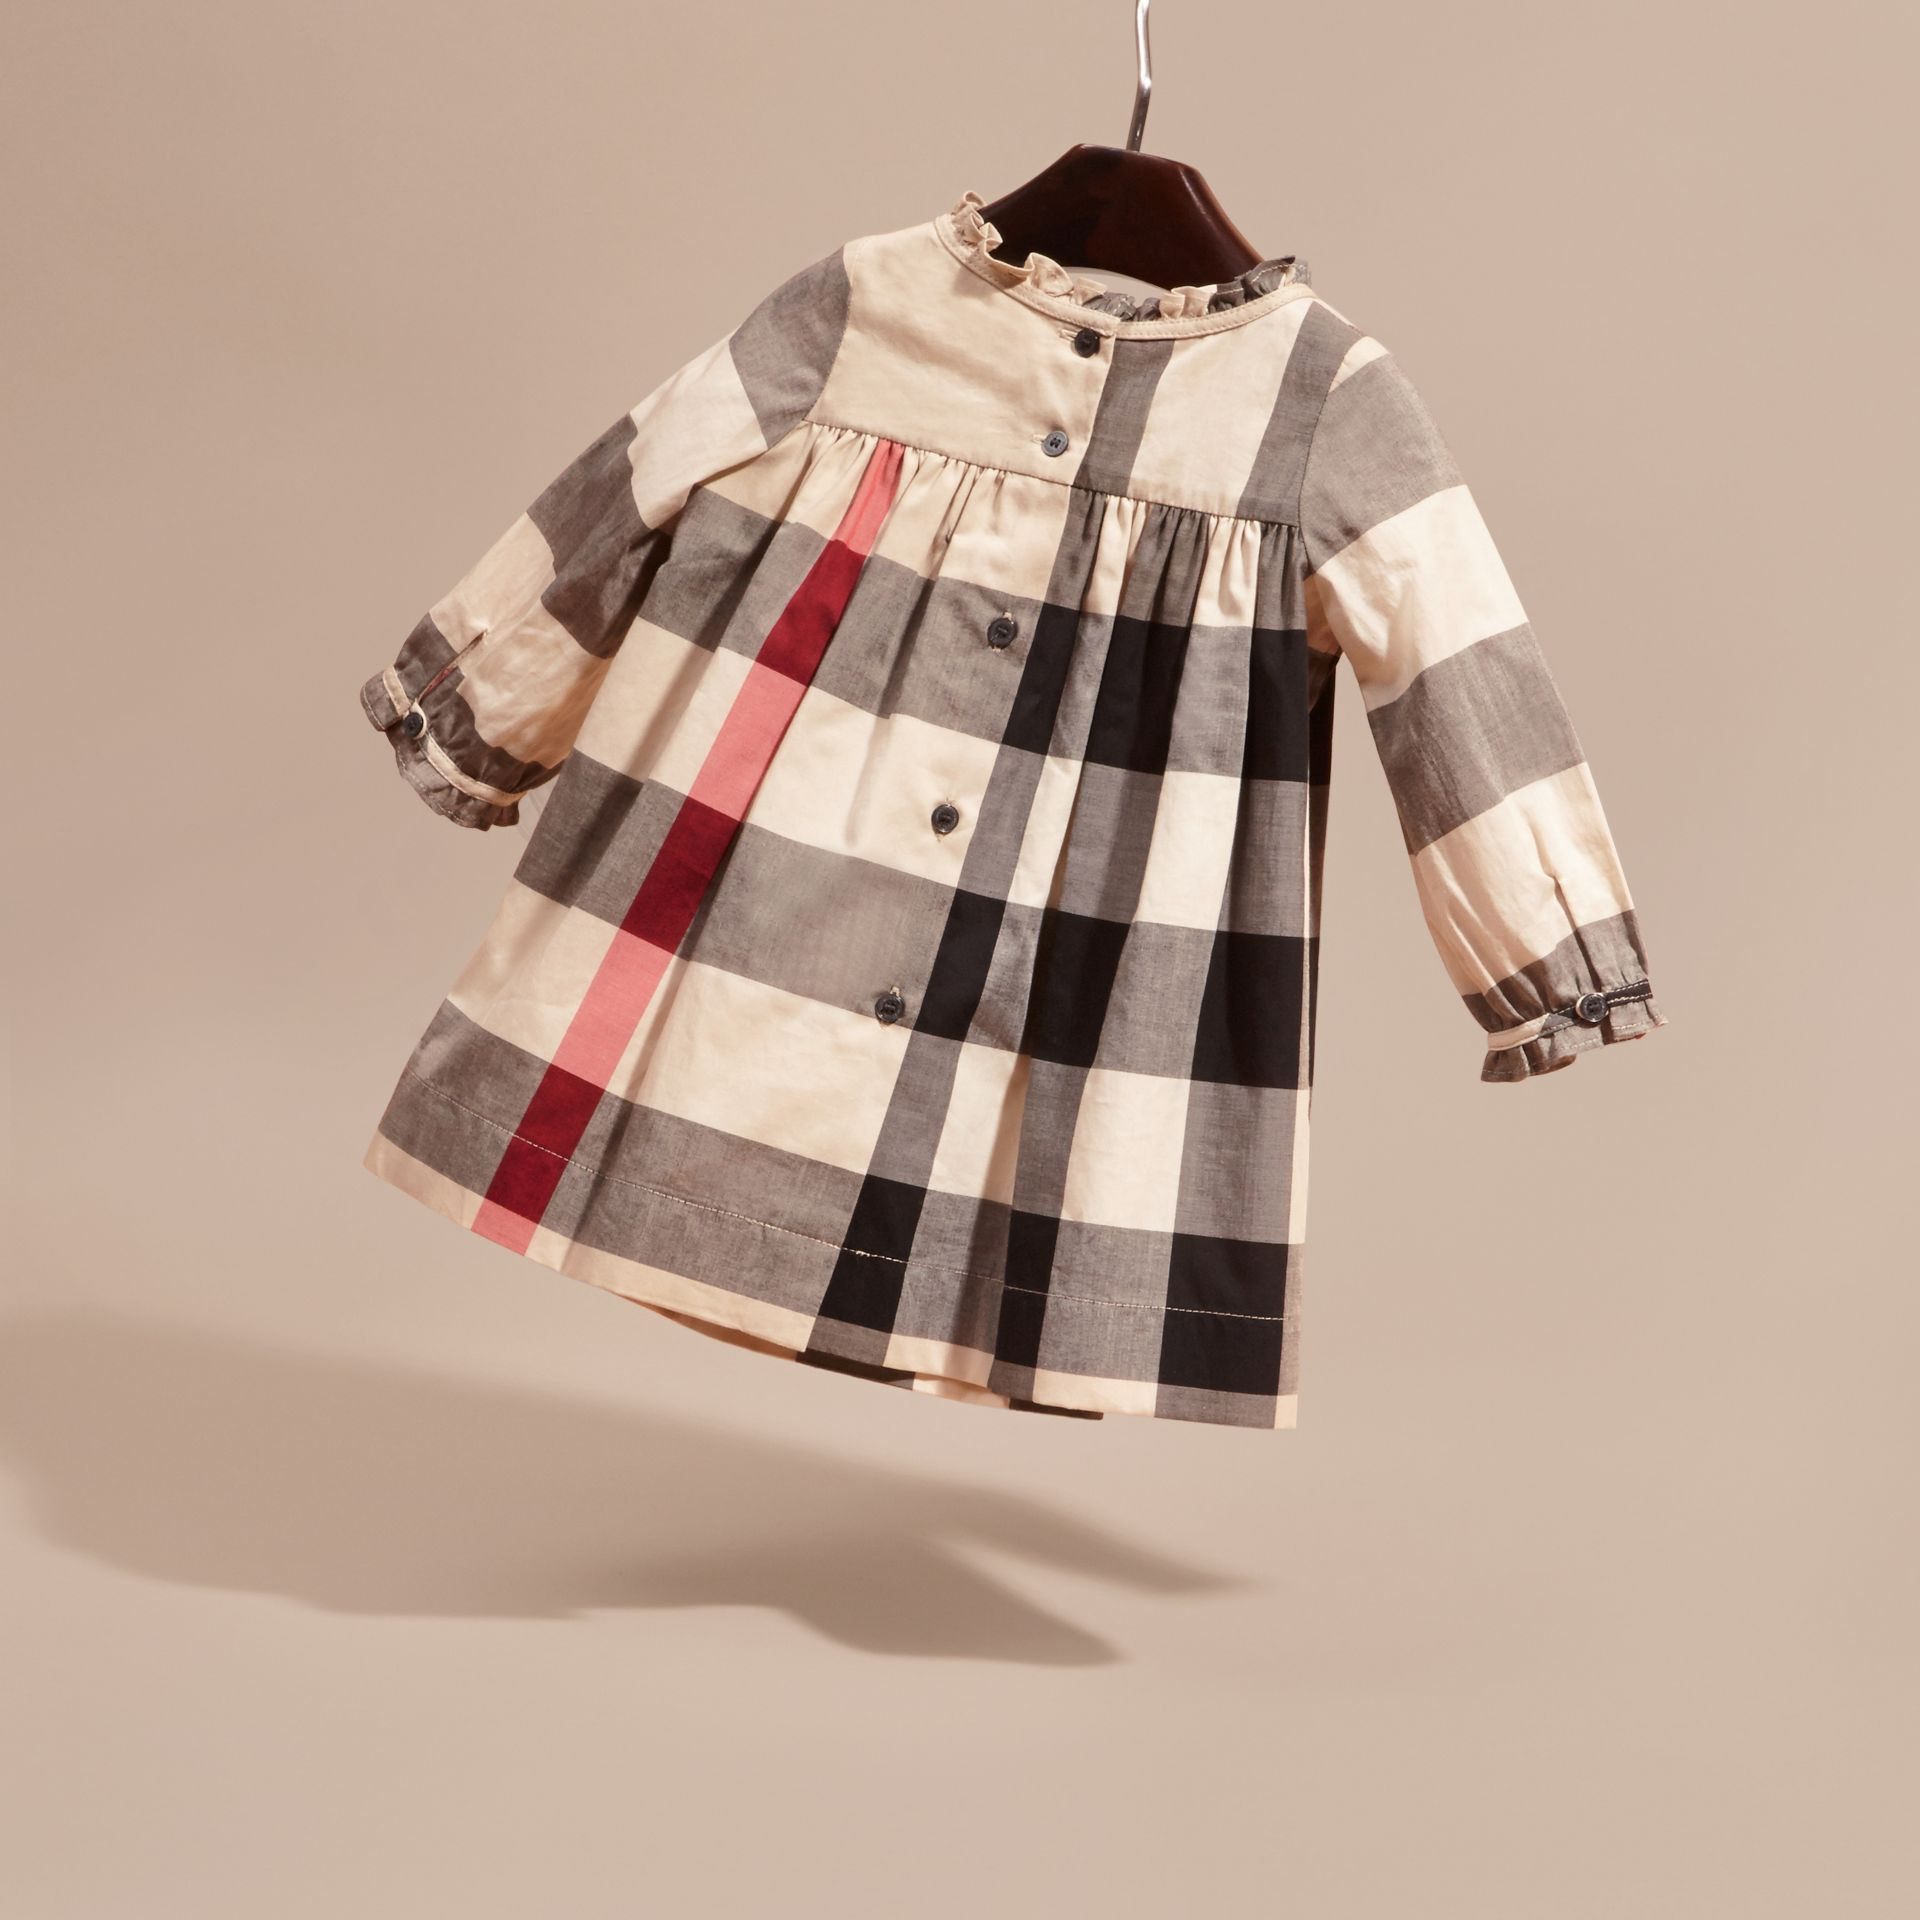 New classic check Check Cotton Dress with Ruffle Detail New Classic - gallery image 4